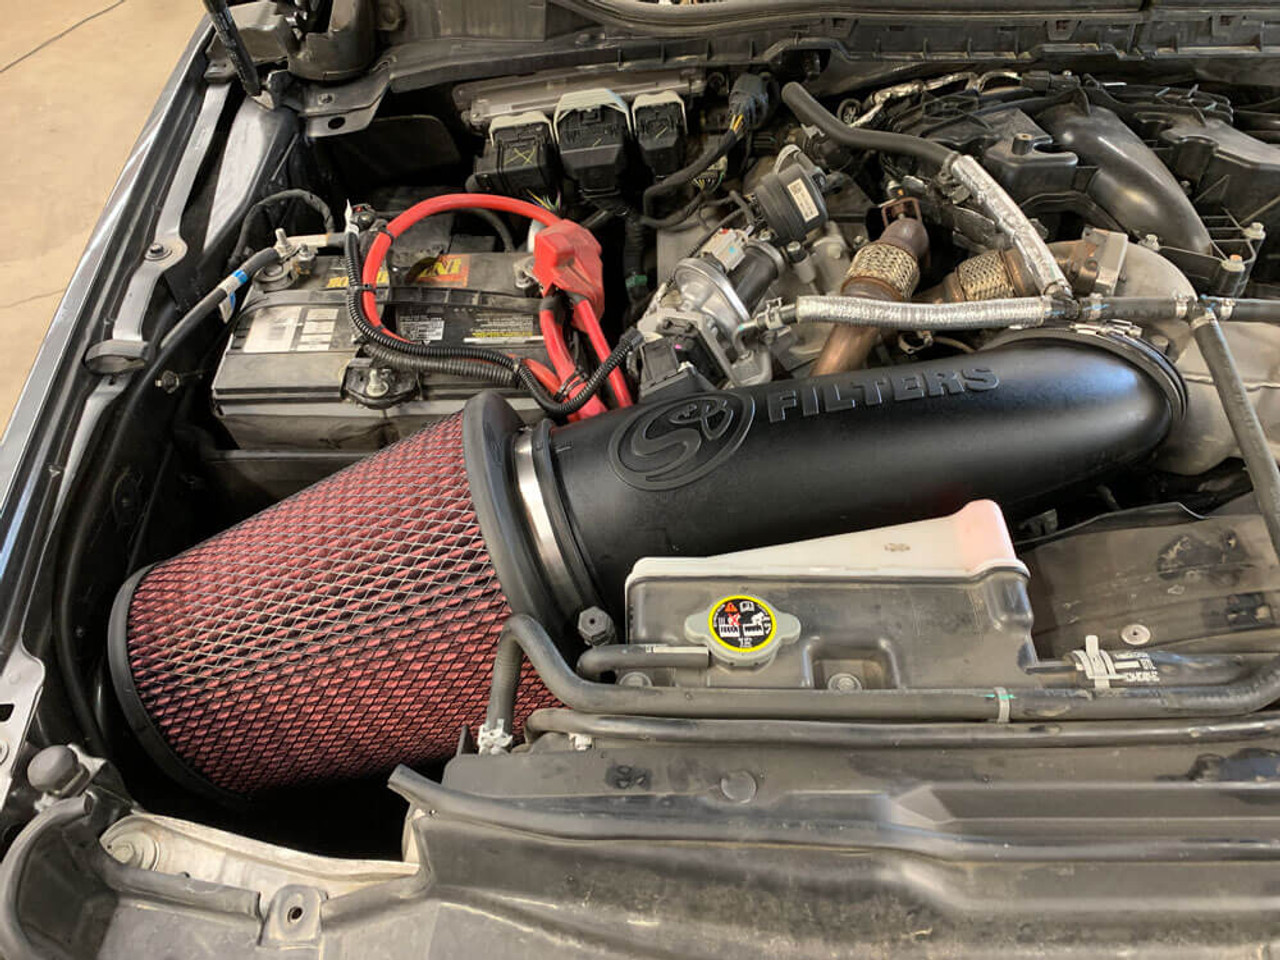 S&B 75-6001 Cold Air Intake For 17-19 Ford Powerstroke 6.7L